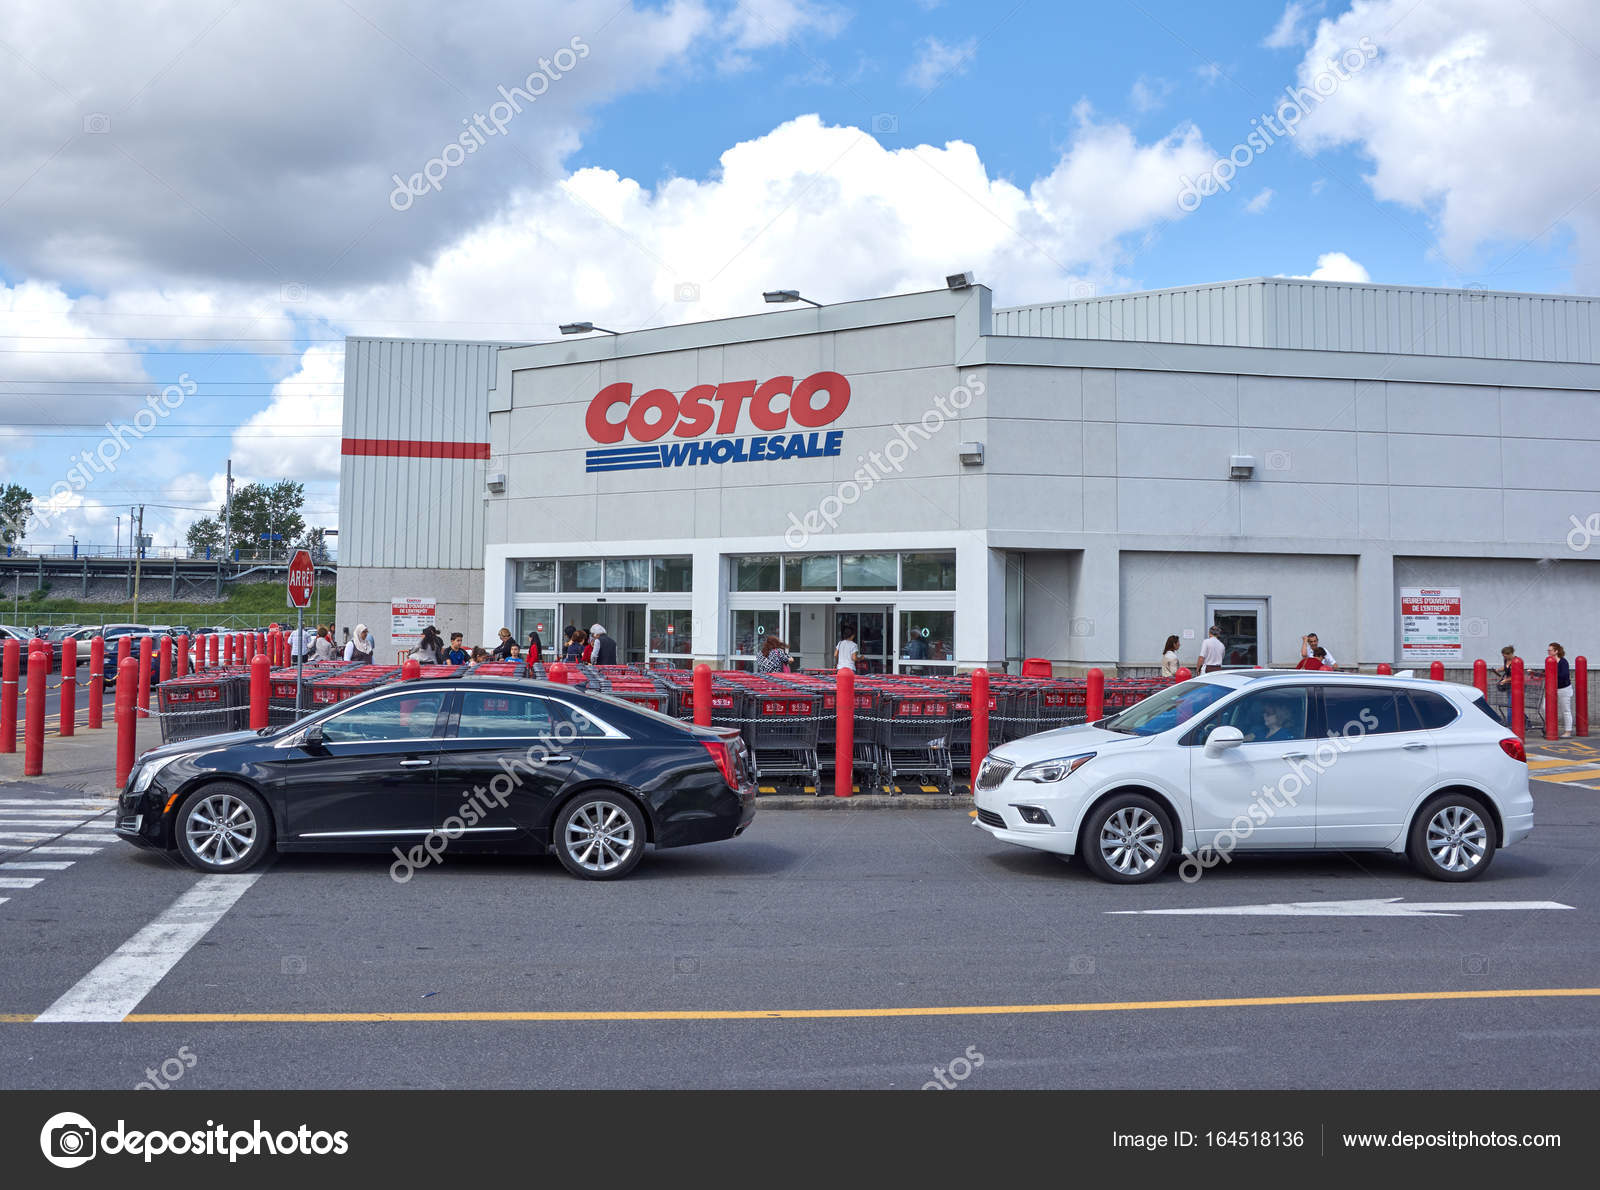 Costco wholesale store and logo stock editorial photo dennizn costco wholesale corporation trading as costco is the largest american membership only warehouse club photo by dennizn altavistaventures Images